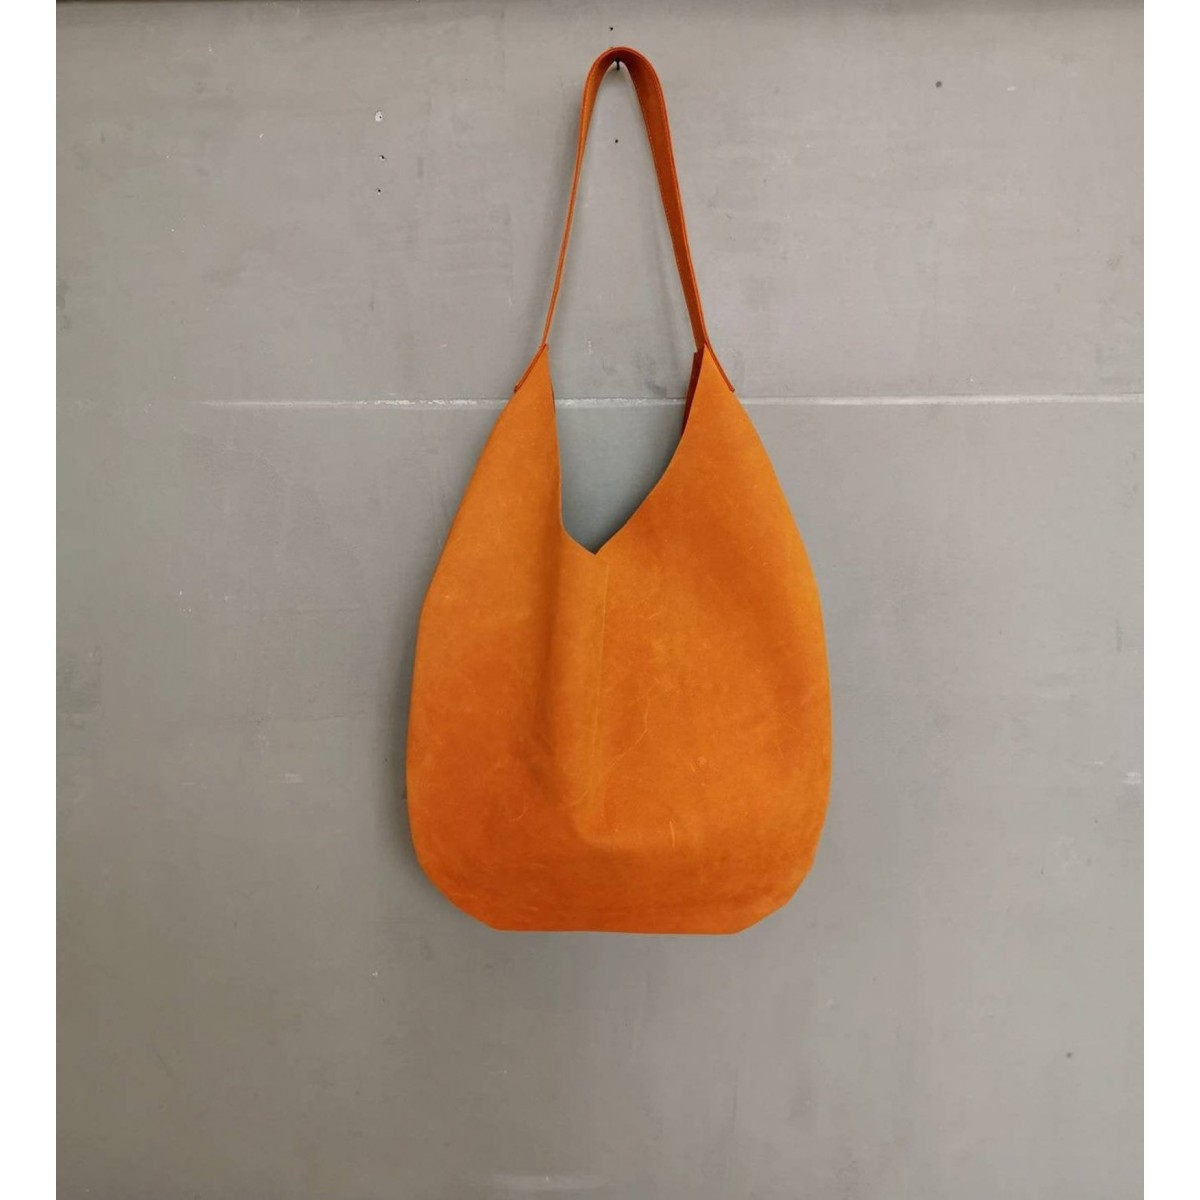 Großer Lederbeutel // Lederbeutel Tasche // Slouchy Bag // Indian summer orange bag // Hobo Bag // Leder Tote // boho//Dunkelorange